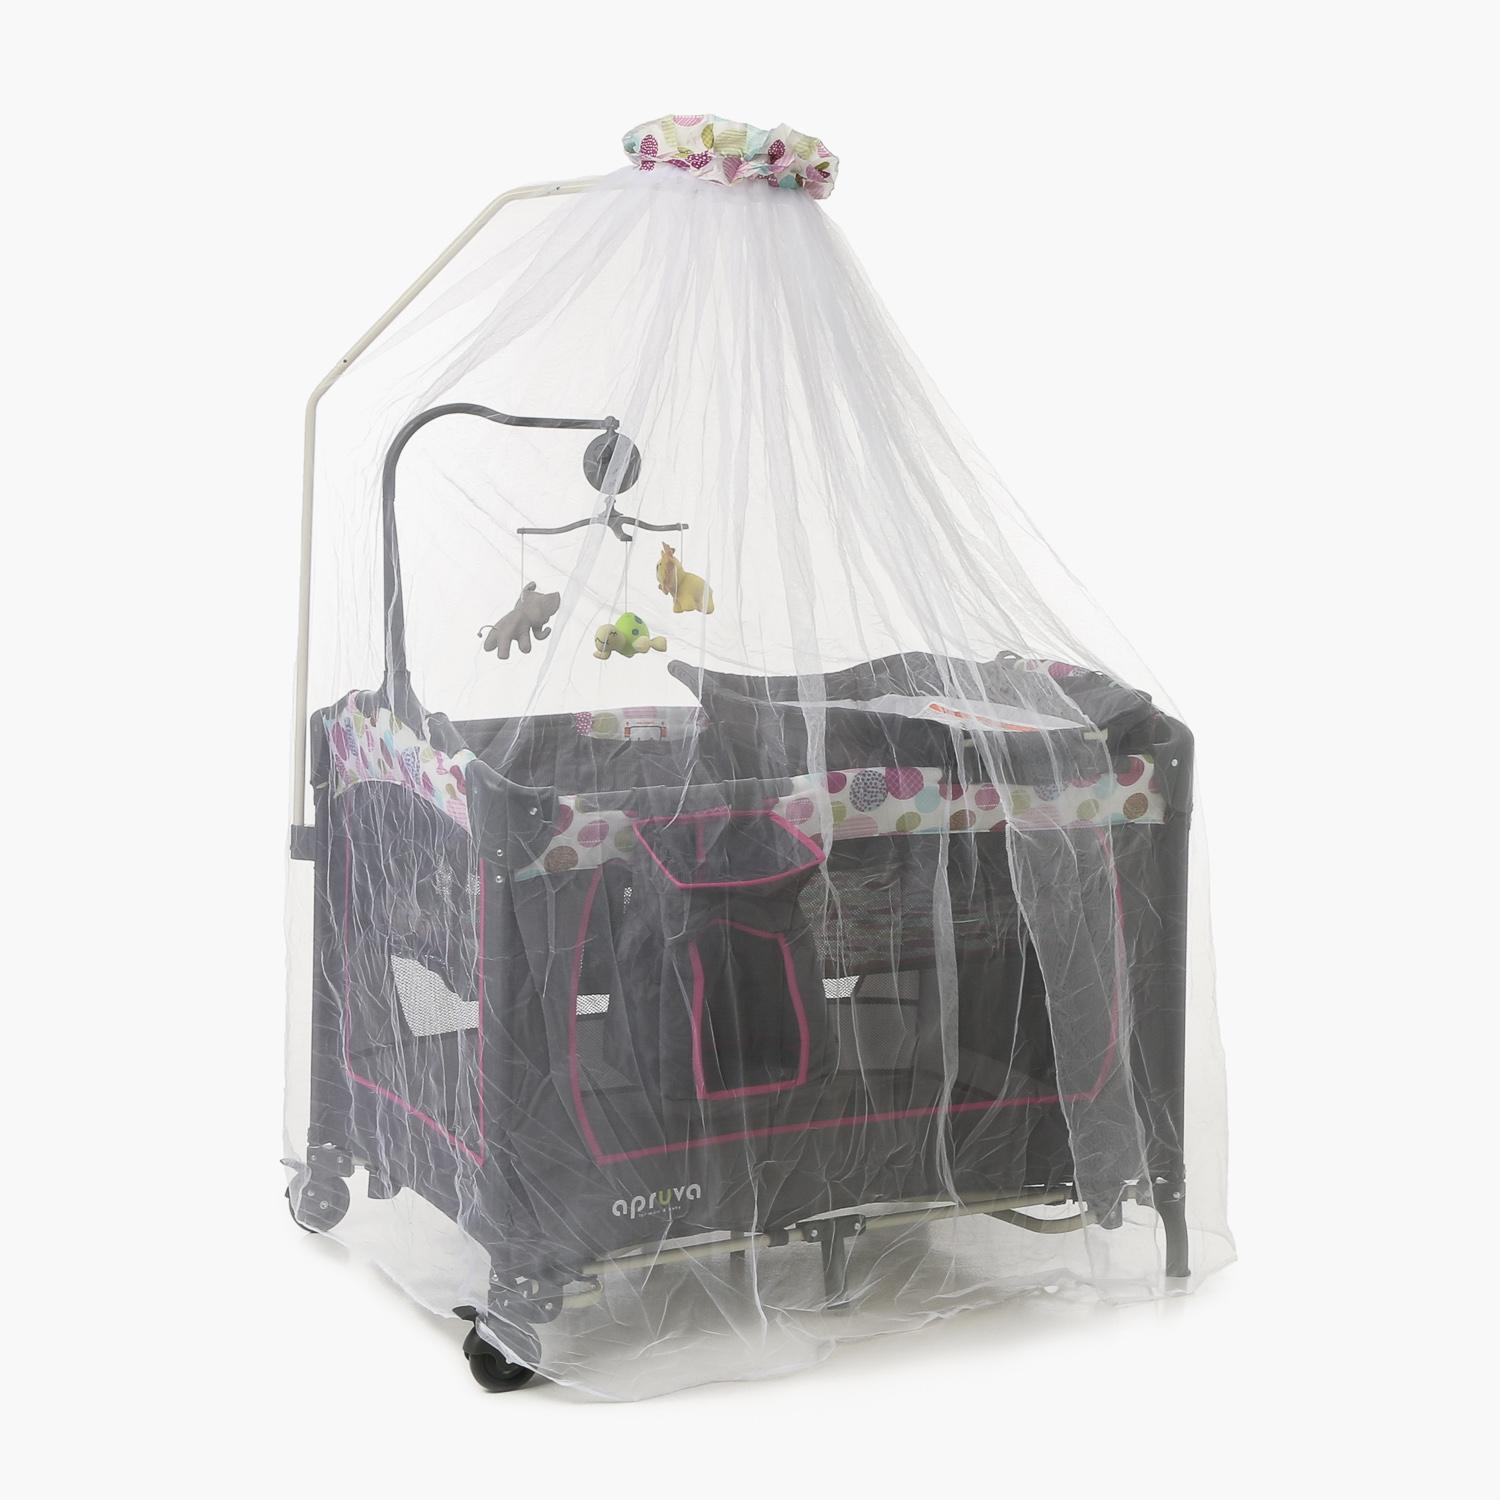 Apruva Pack & Play Pp677ne Playpen With Princess Net (pink) By The Sm Store.